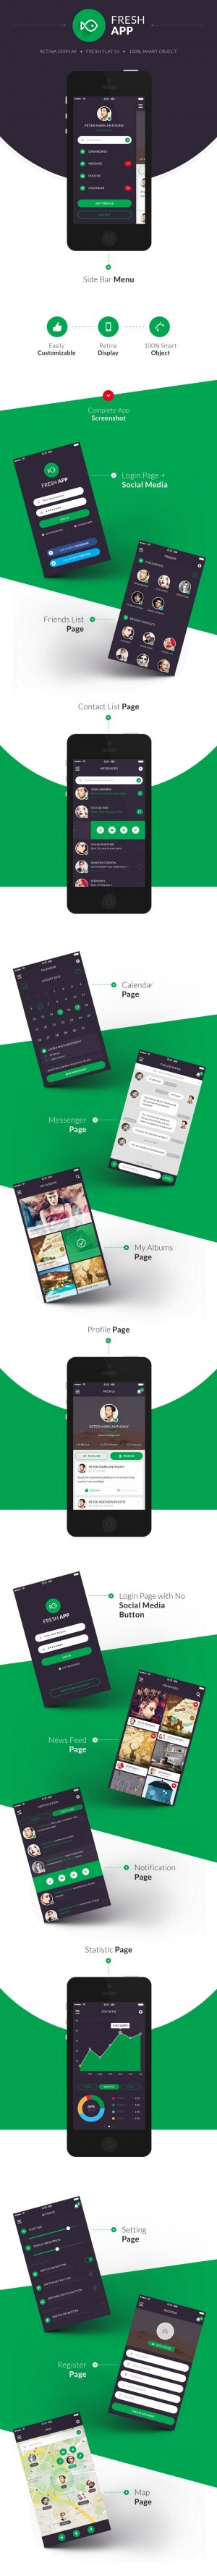 Fresh Flat Mobile UI Kit